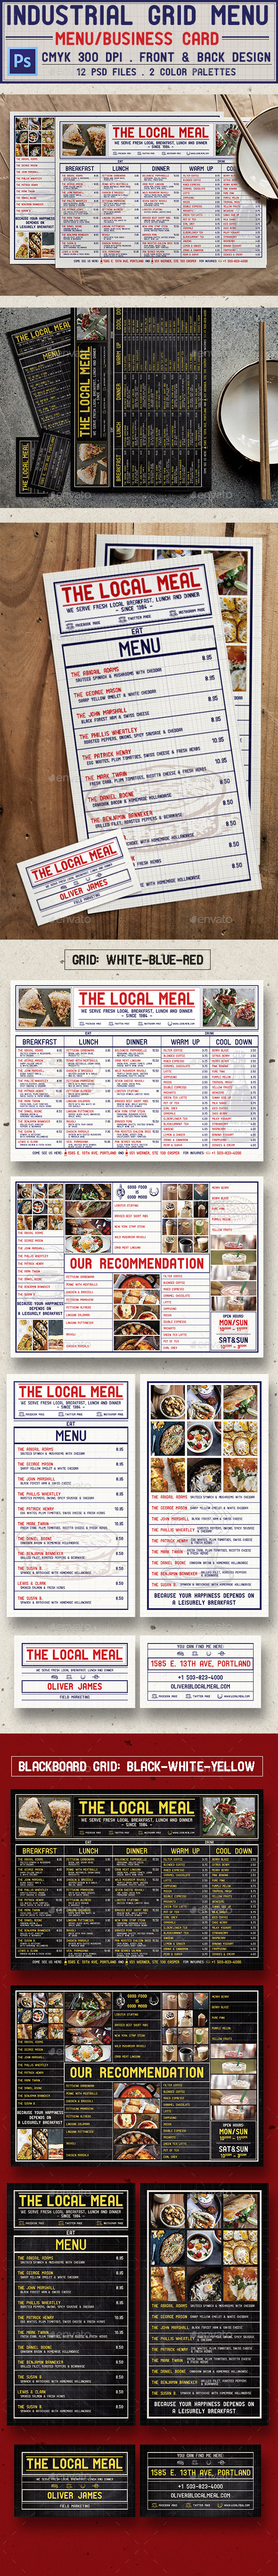 Industrial Grid Menu - Food Menus Print Templates